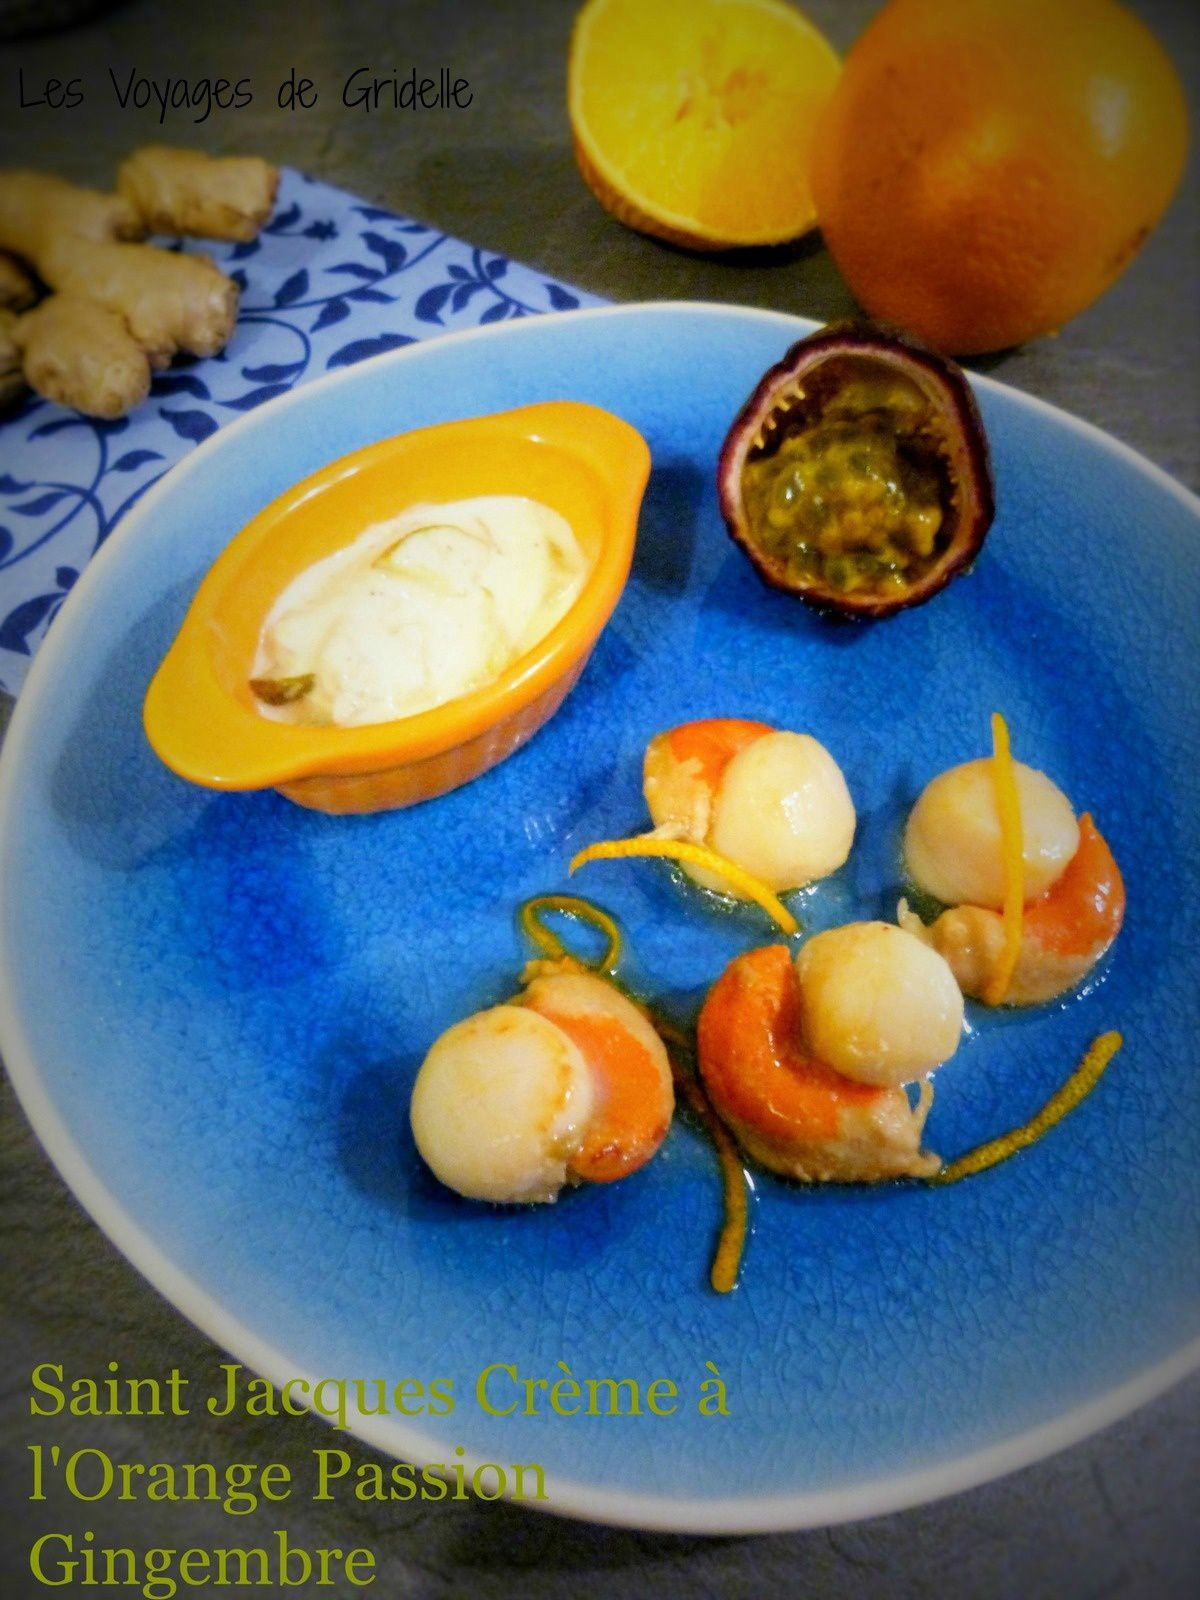 Saints Jacques Crème à l'Orange Passion Gingembre